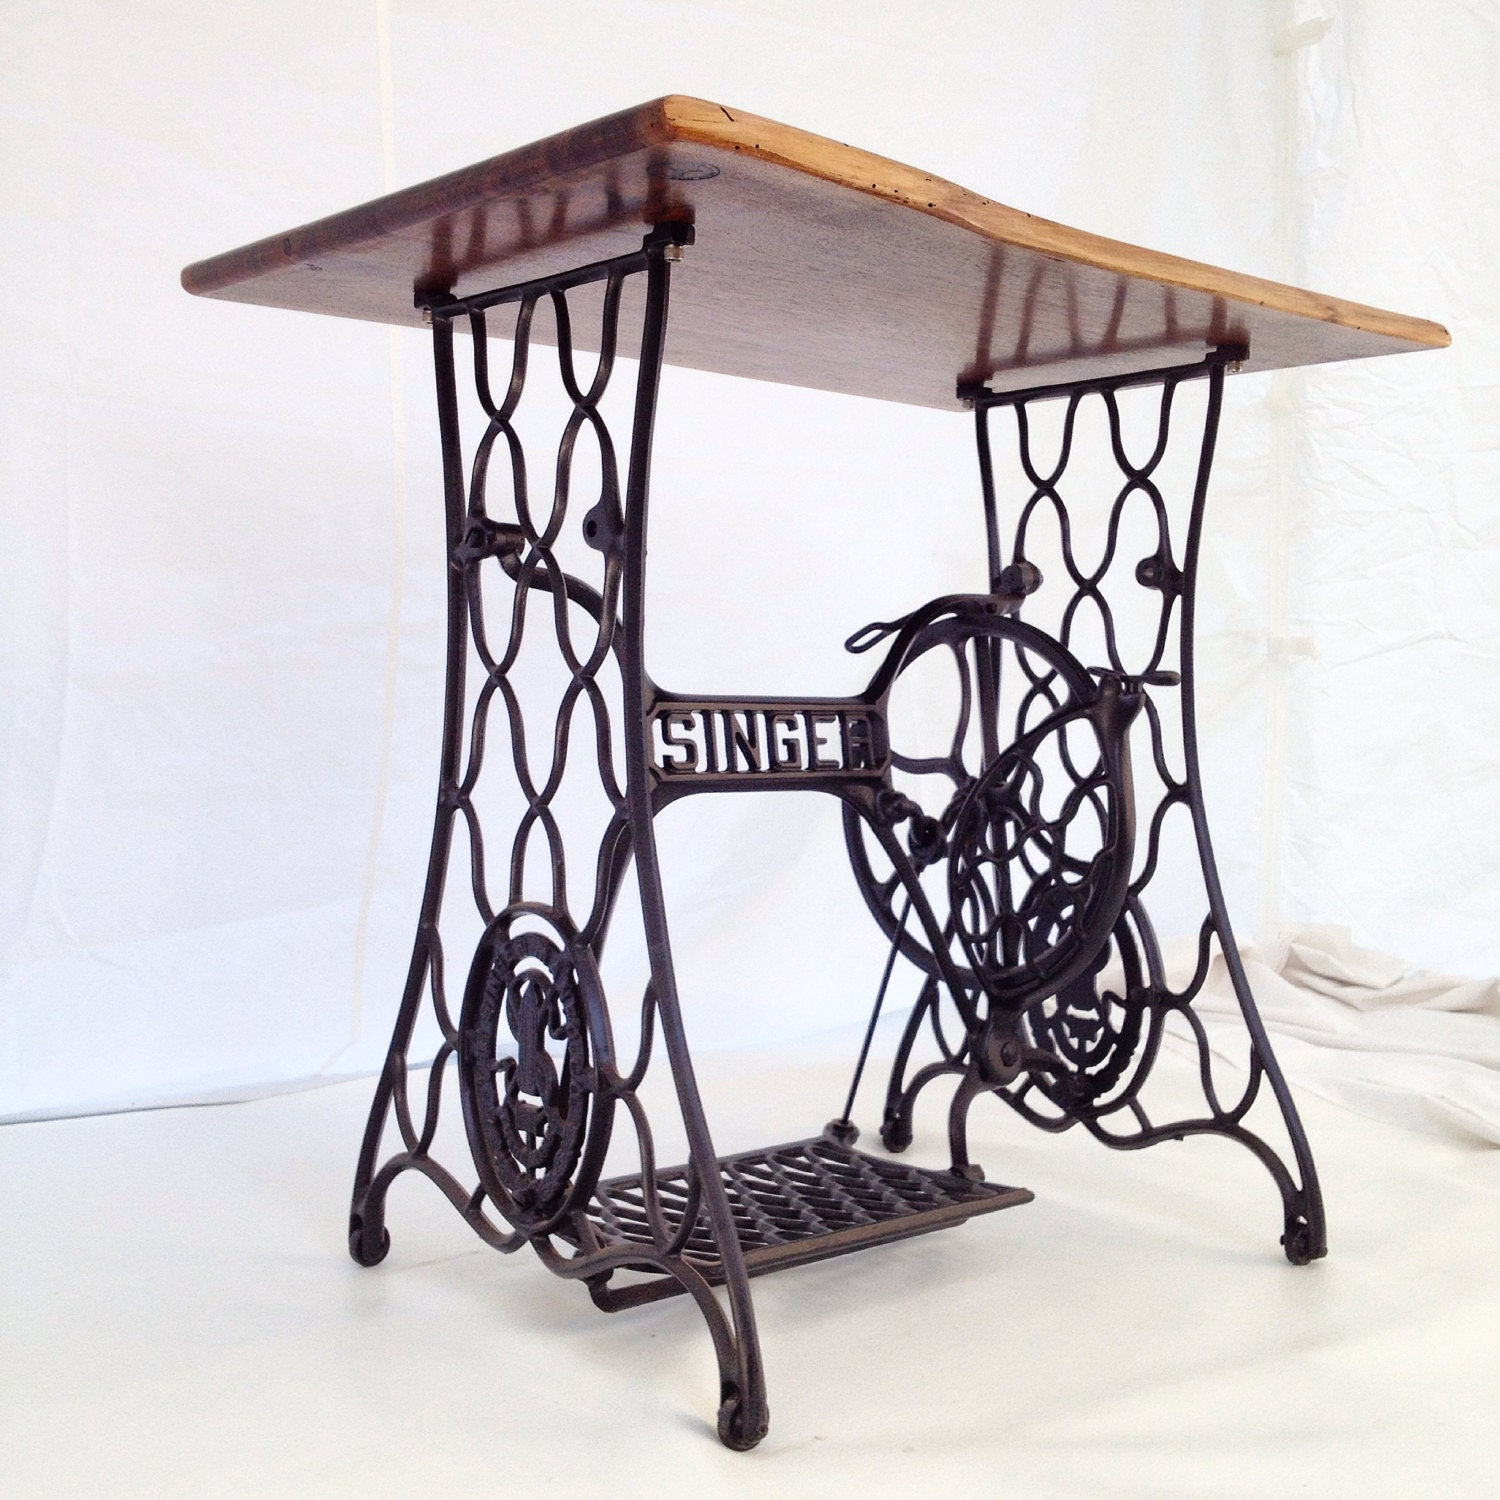 Industrial furniture singer sewing table singer sewing desk - Table machine a coudre singer ...